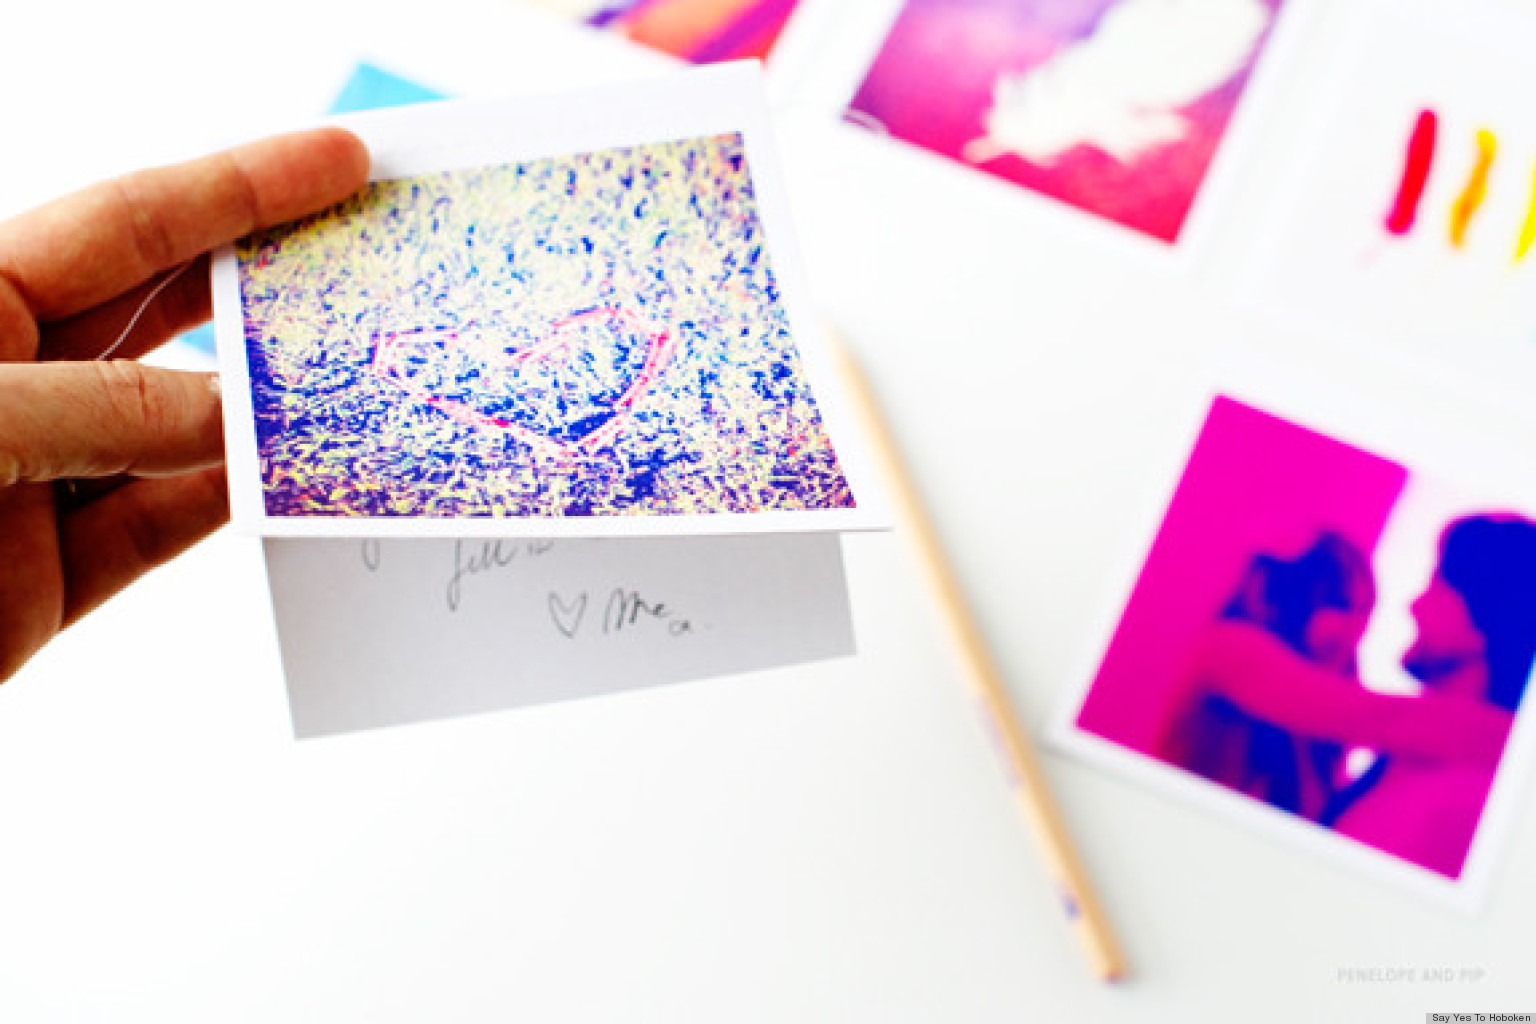 Homemade Gift Ideas: An Easy Way To Turn Instagram Photos